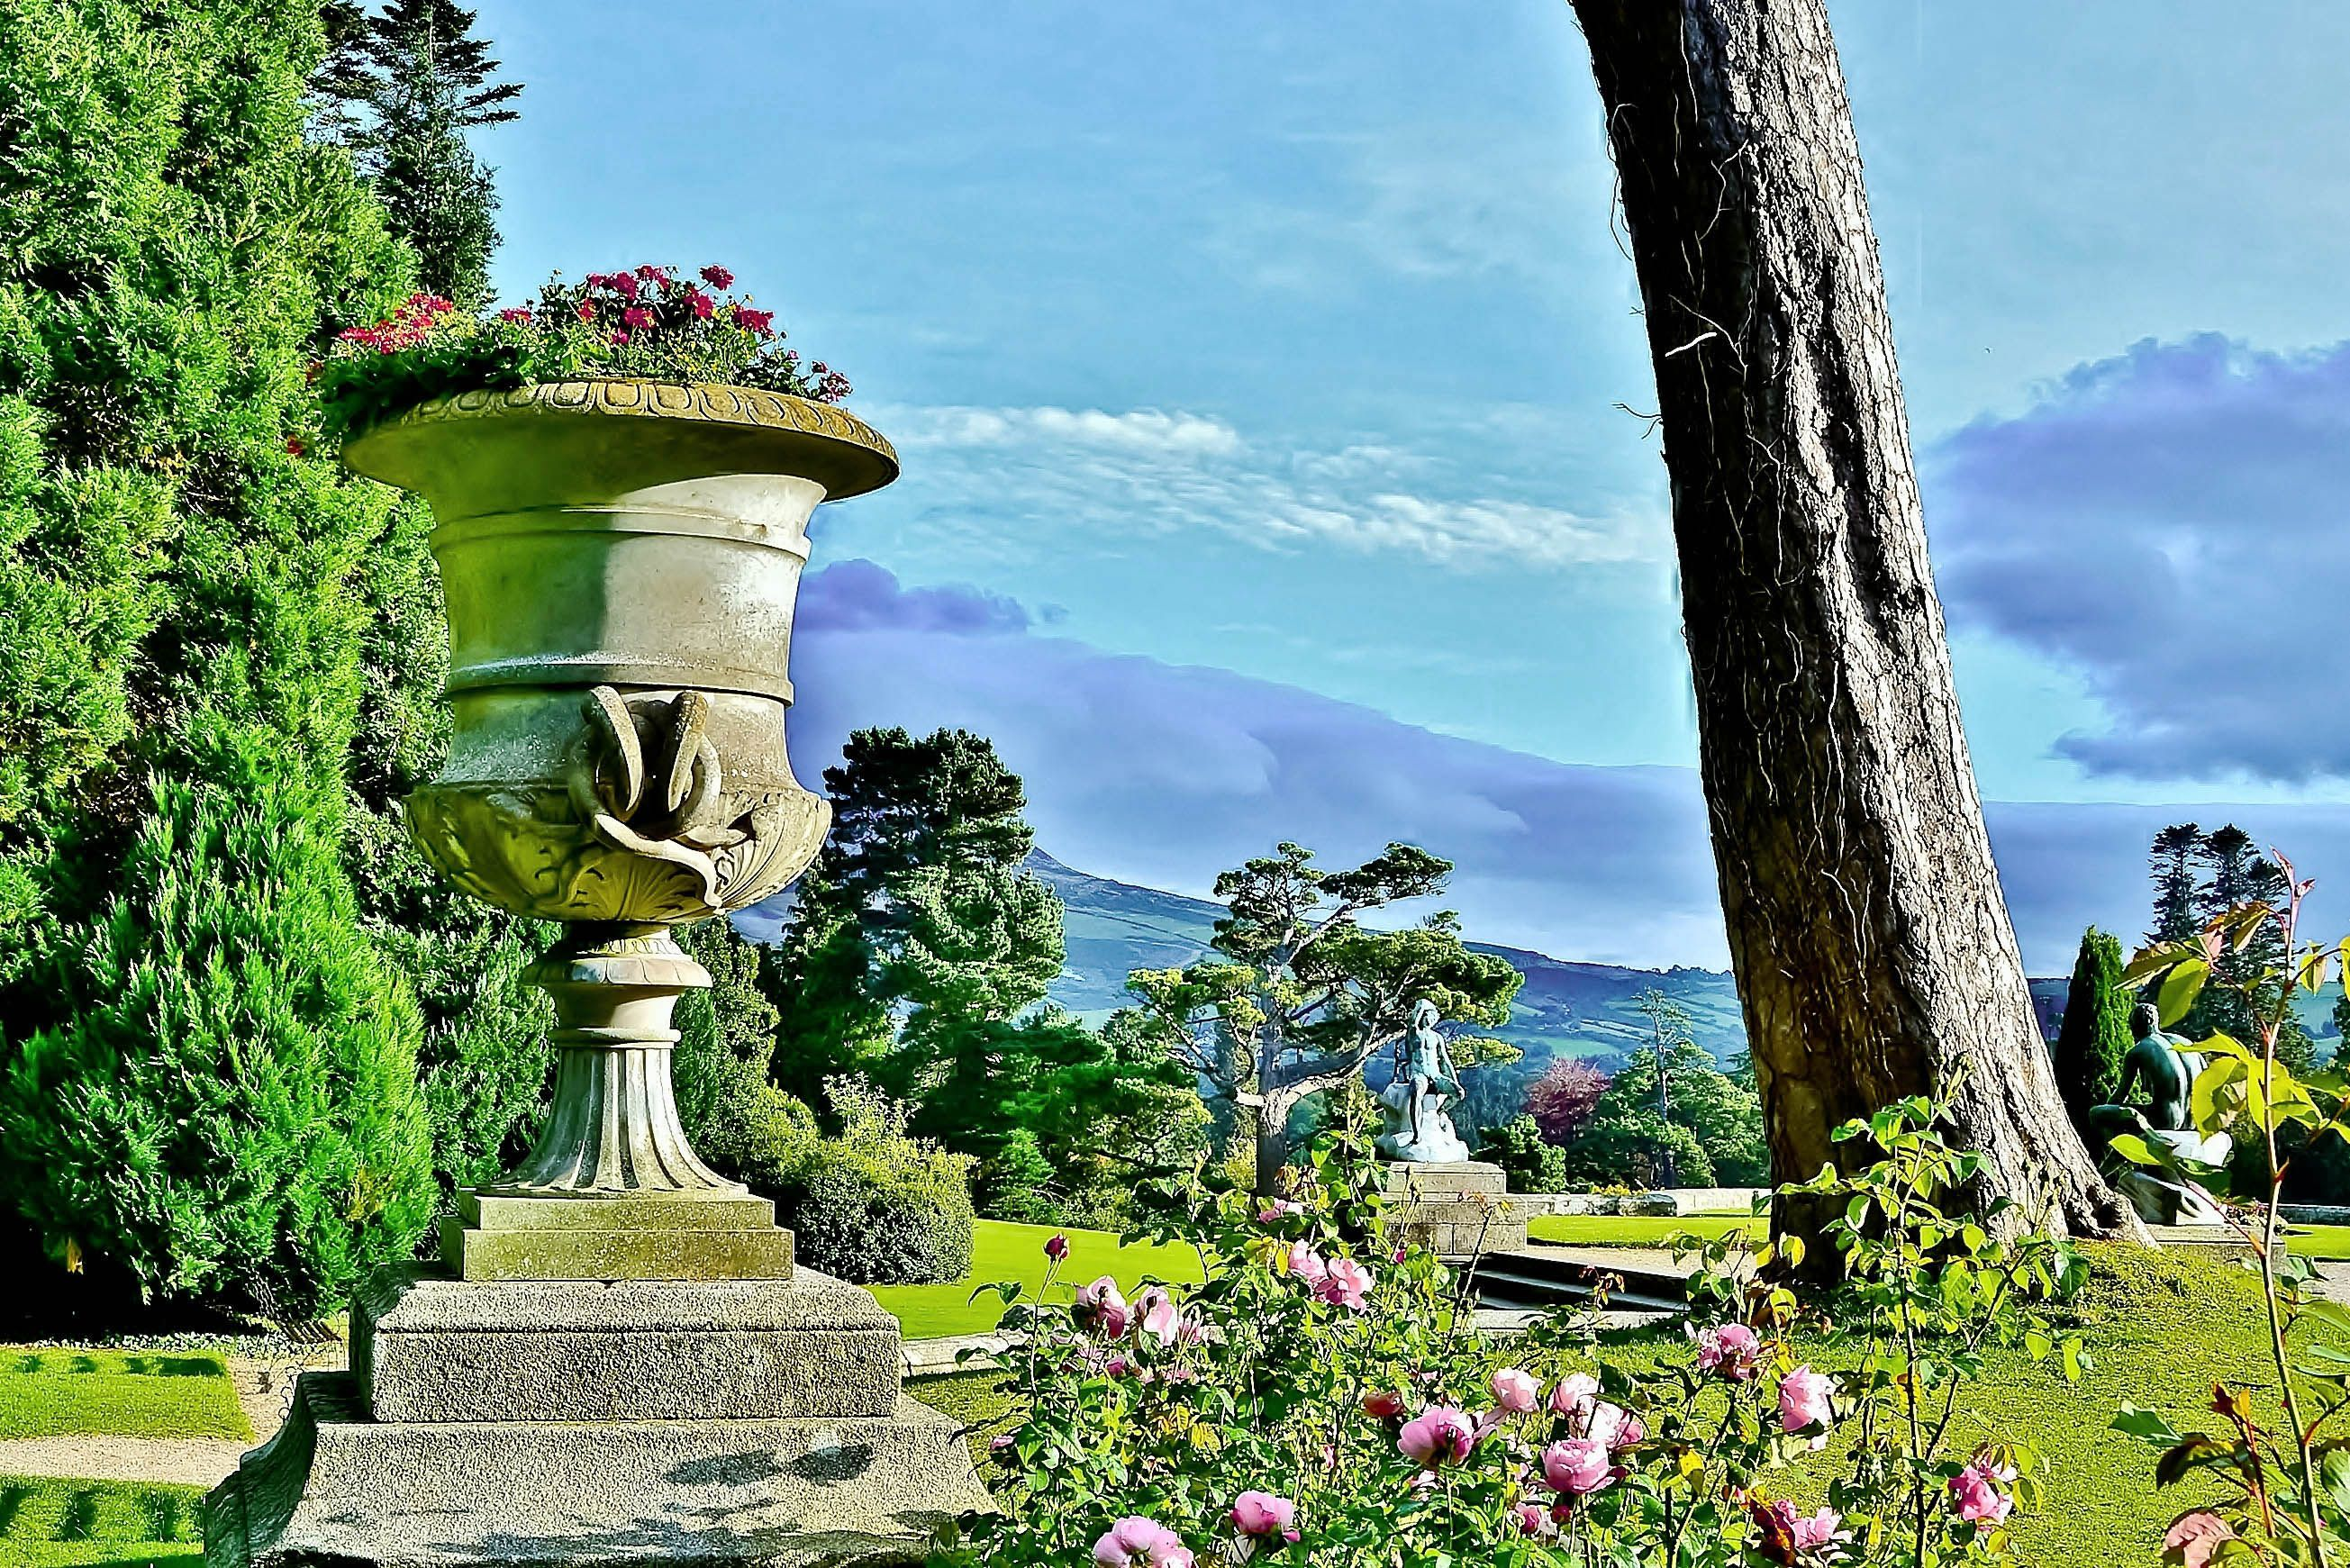 The historic Powerscourt House and Gardens in County